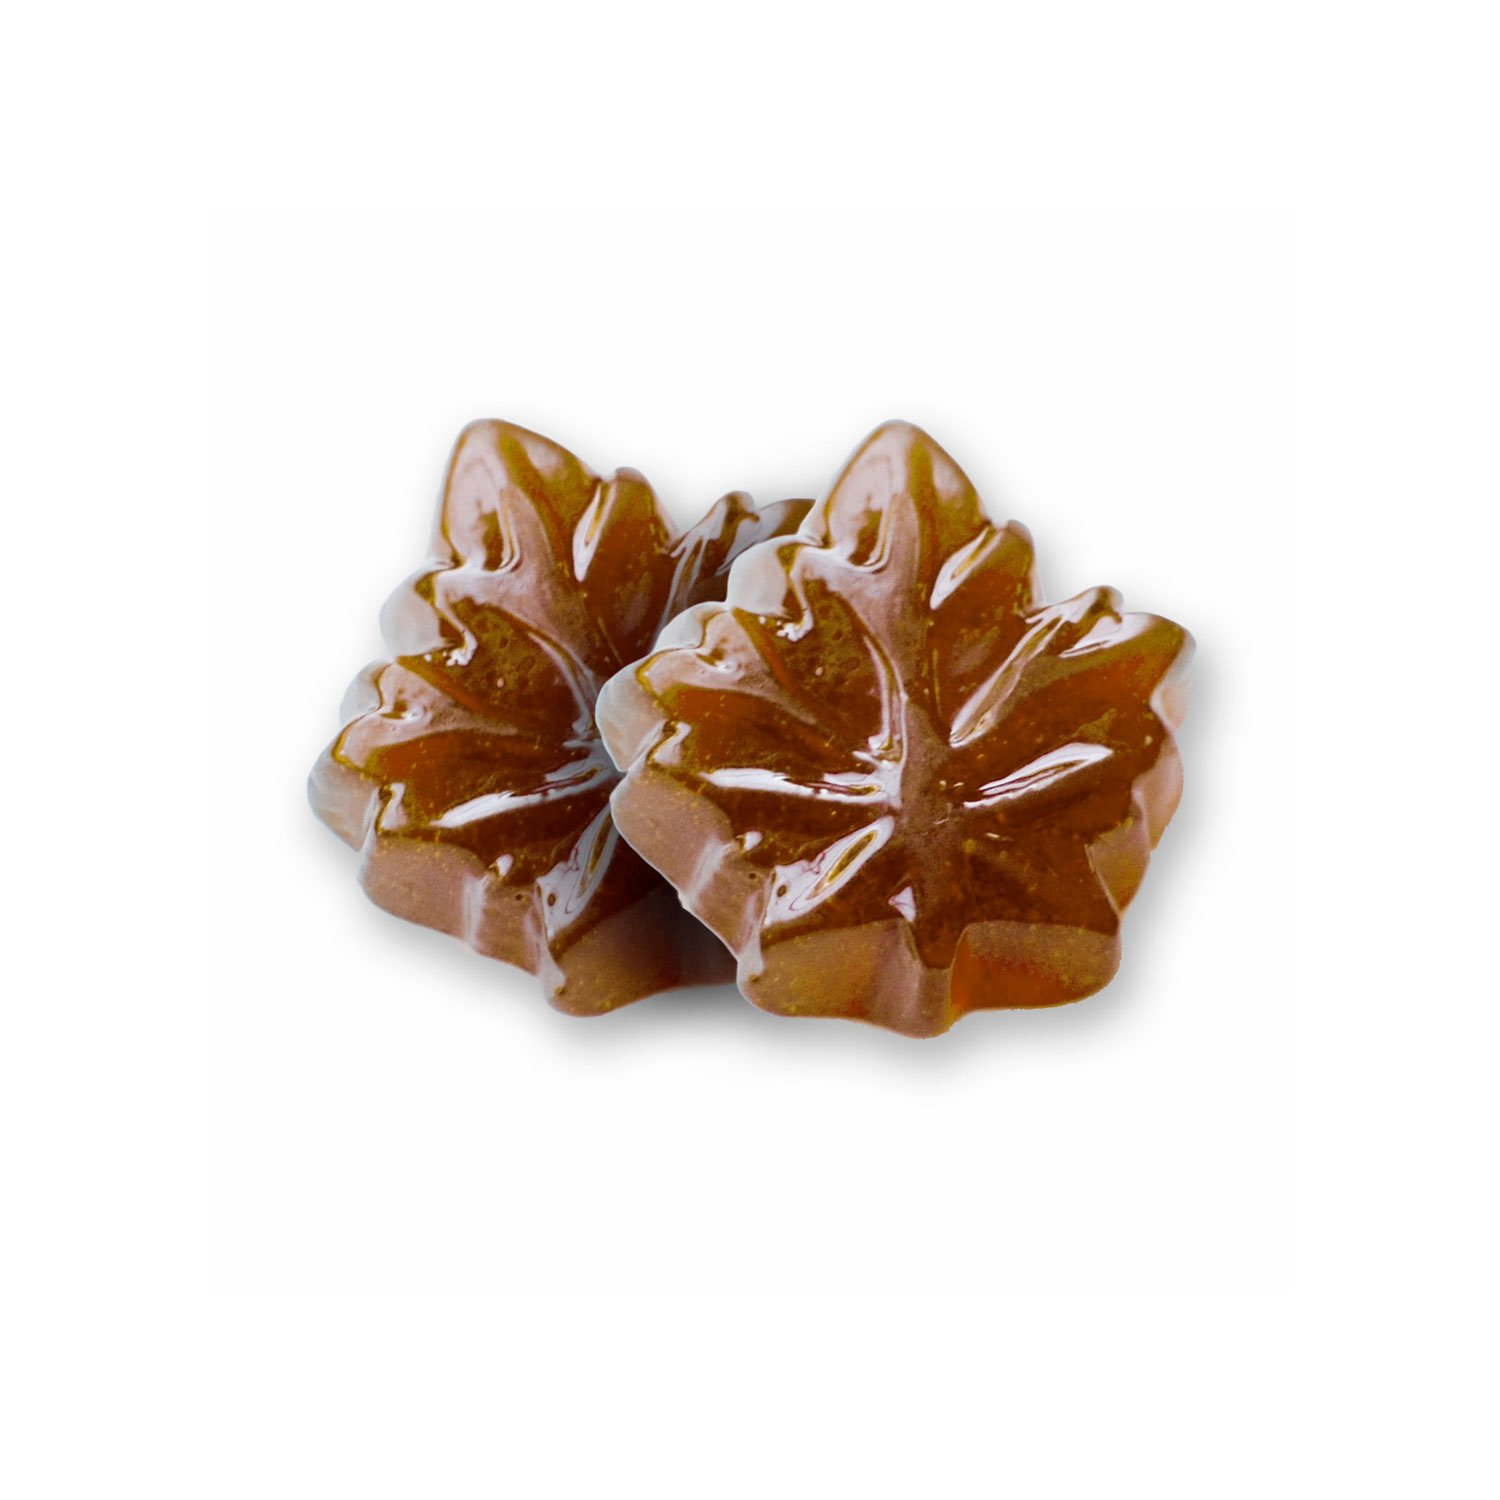 Premium Canadian Maple Sugar Hard Candy Drops Made from Pure Maple Syrup from Canada - Tristan Foods (228g) by Tristan Foods